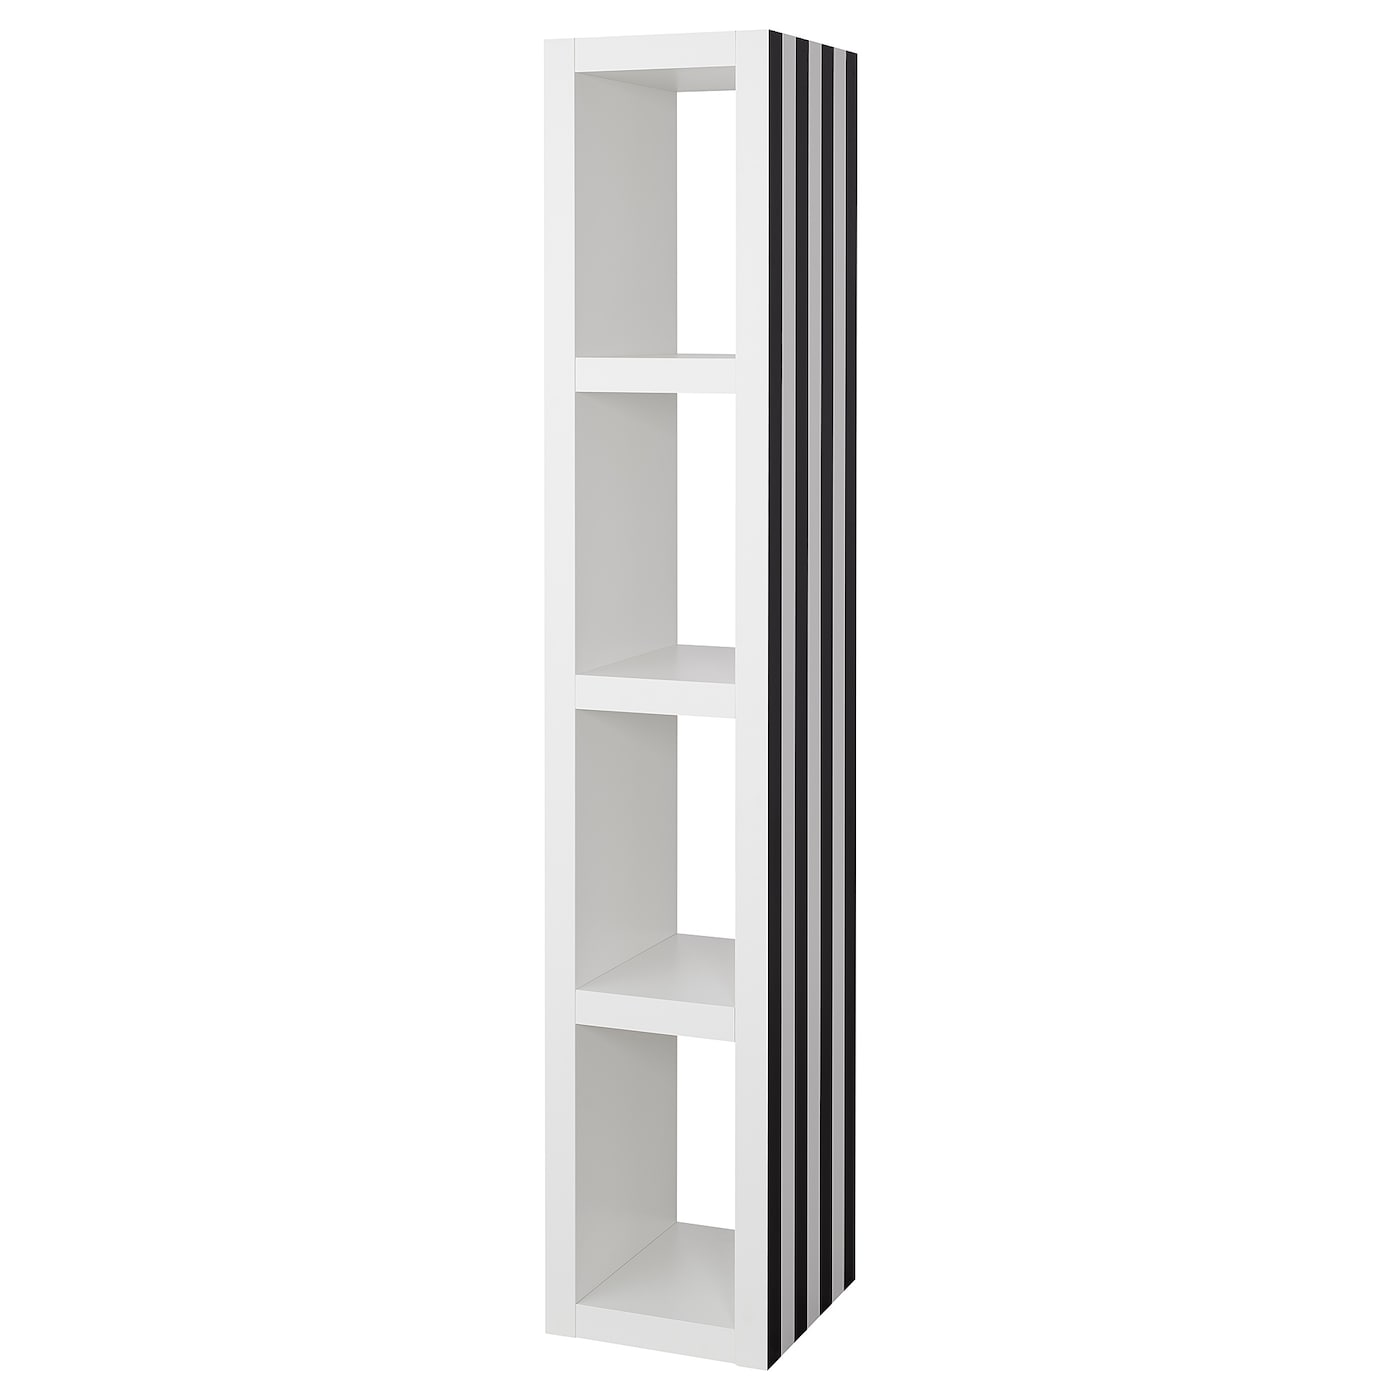 Ikea Lack Shelving Unit Can Also Be Hung On A Wall